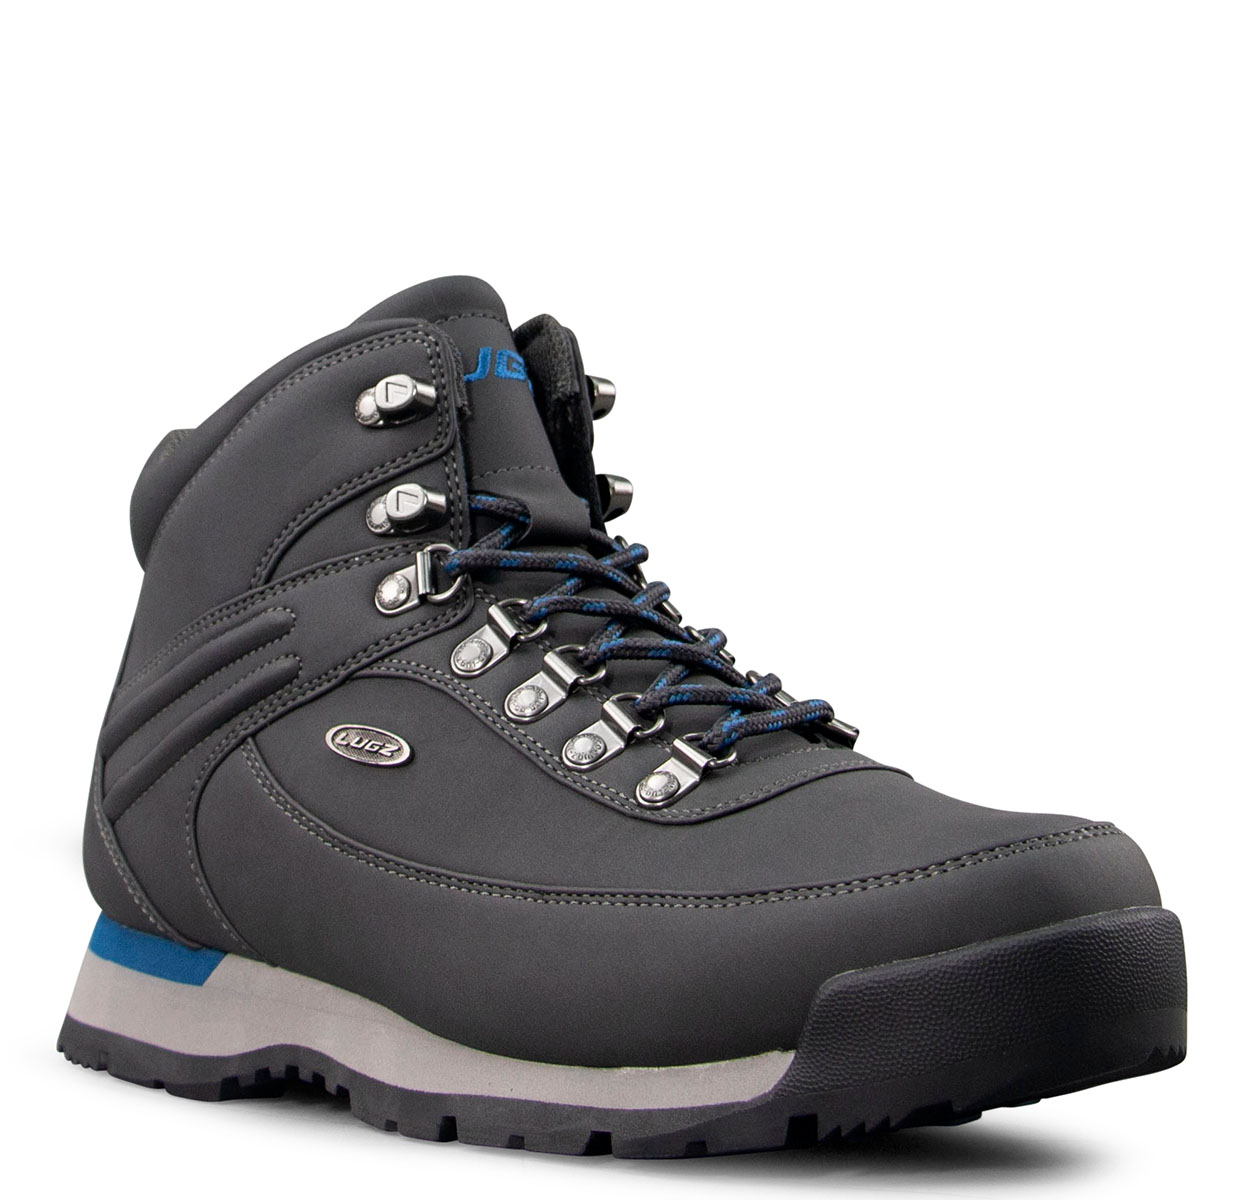 Men's Aspen Chukka Boot (Choose Your Color: DK GREY/BLUE LAKE/BLACK, Choose Your Size: 7.5)